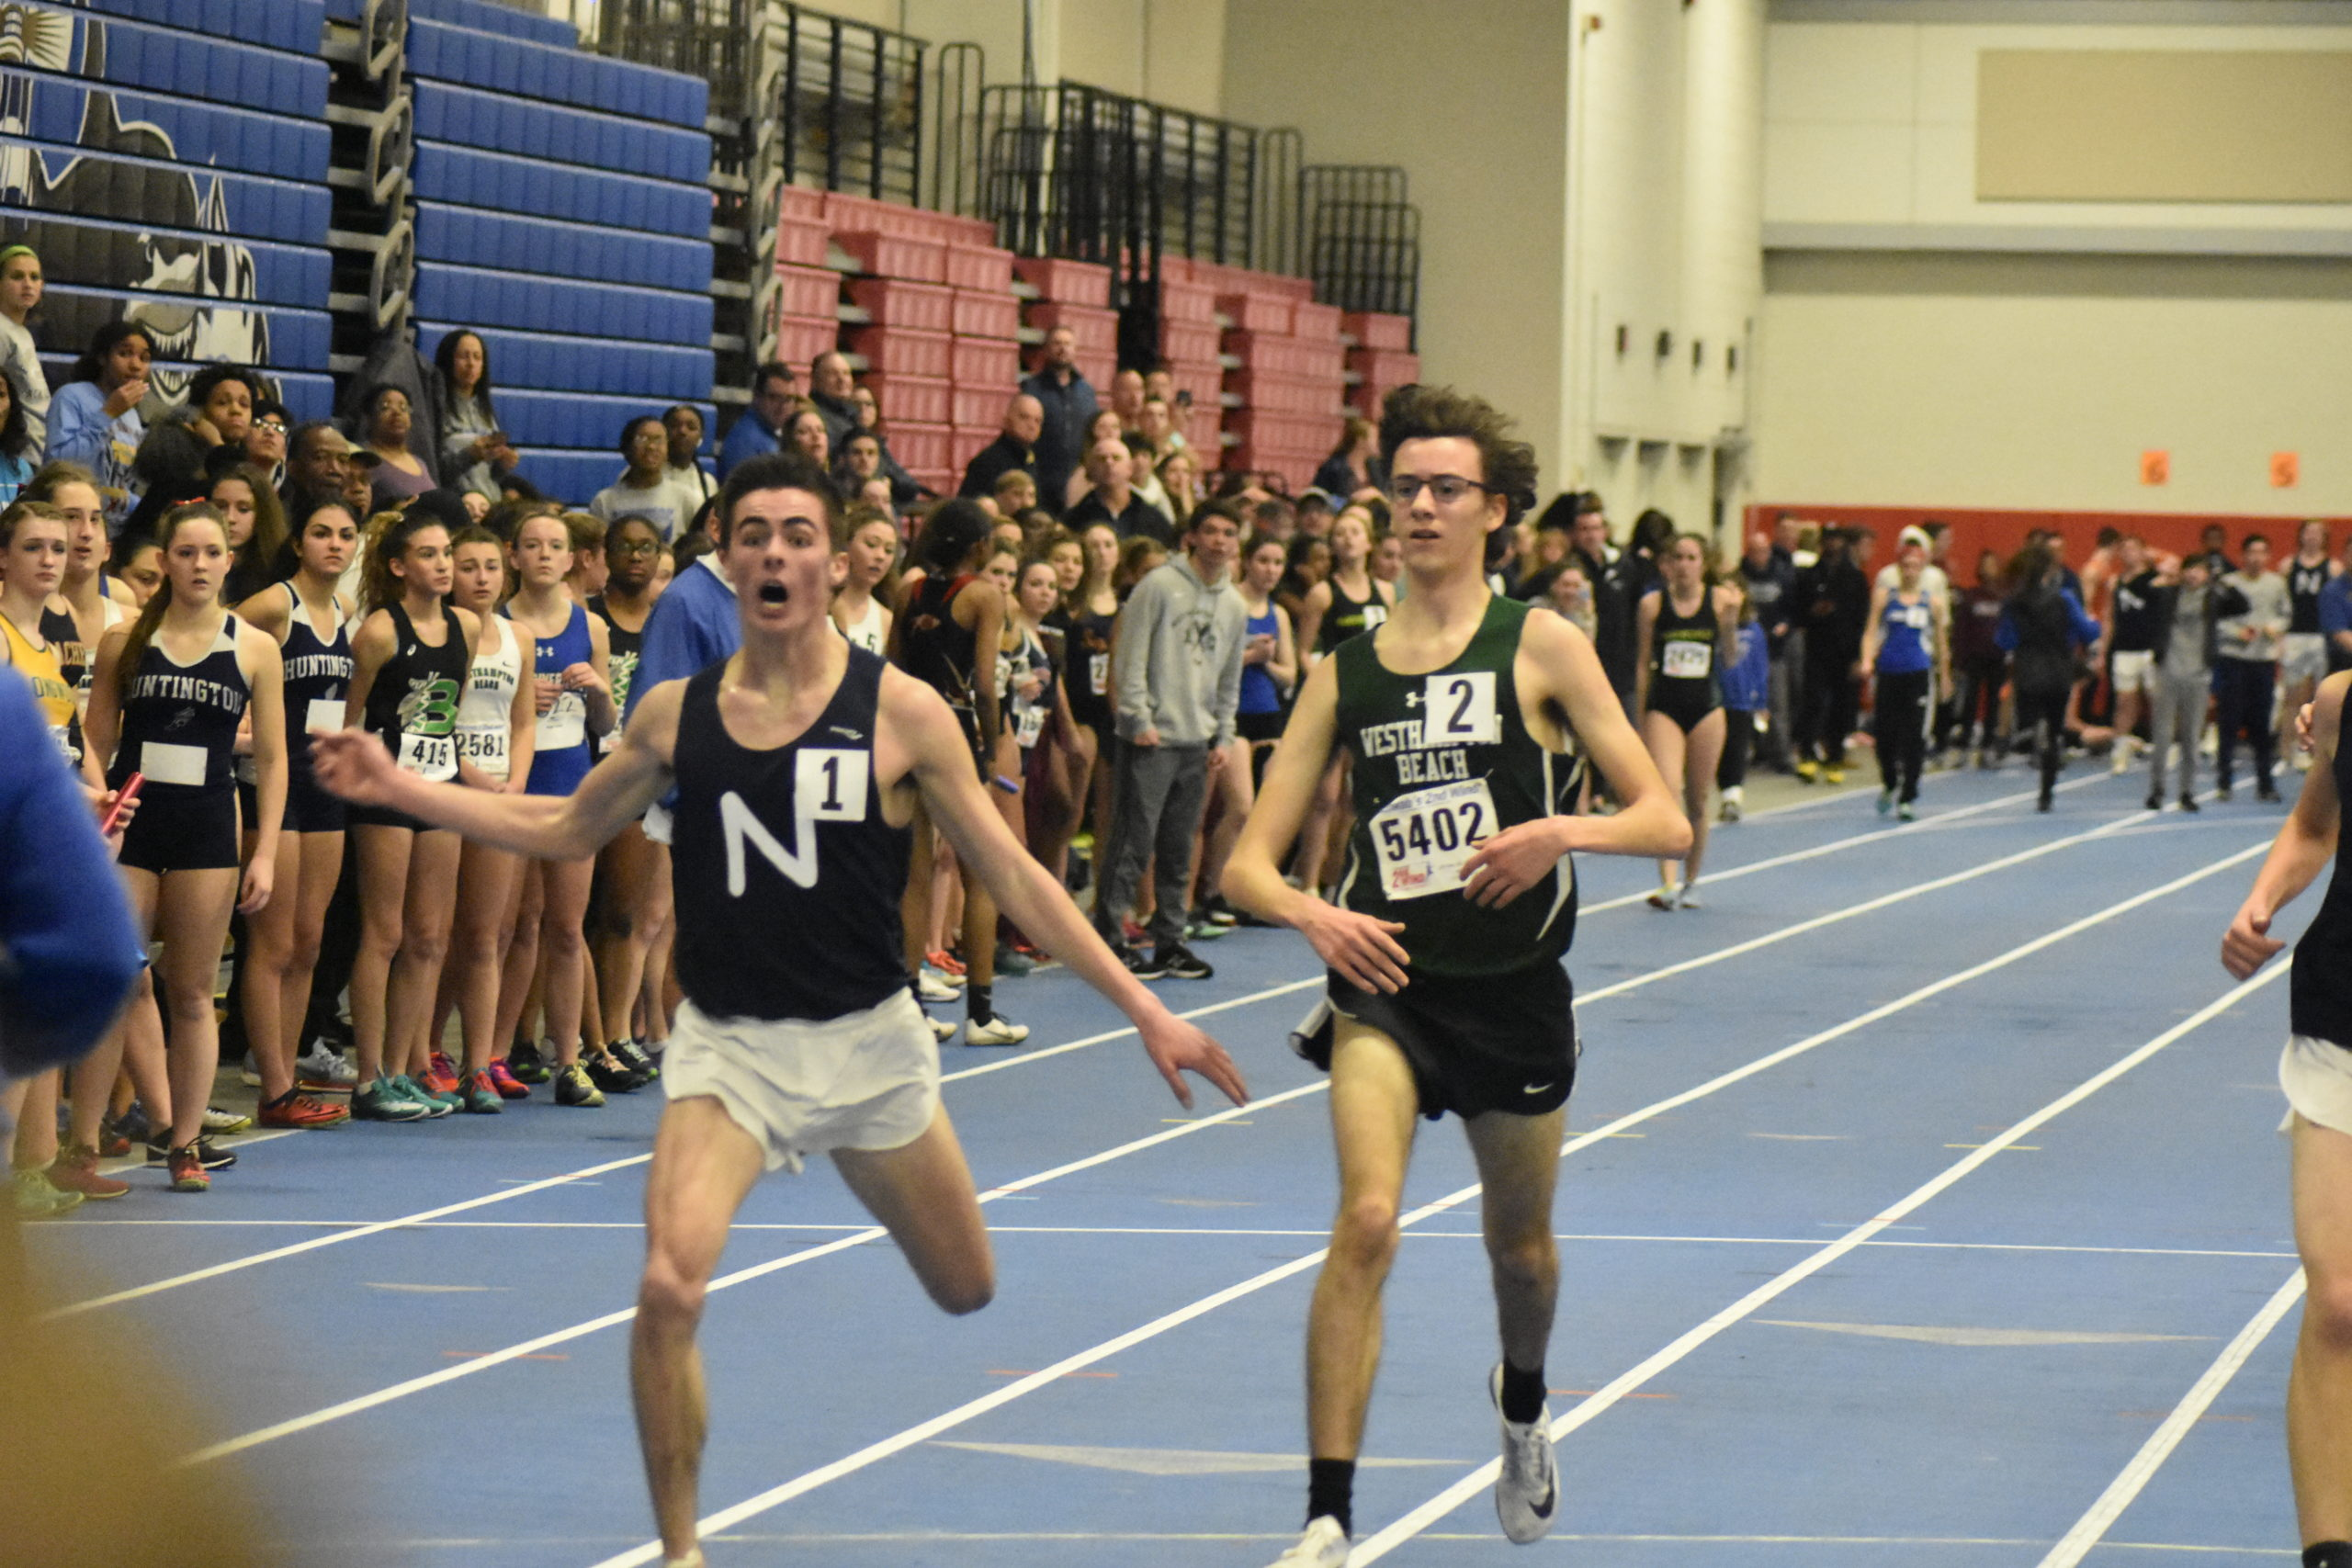 Northport senior Thomas Fodor edged Westhampton Beach sophomore Gavin Ehlers for first place in the 3,200-meter race.